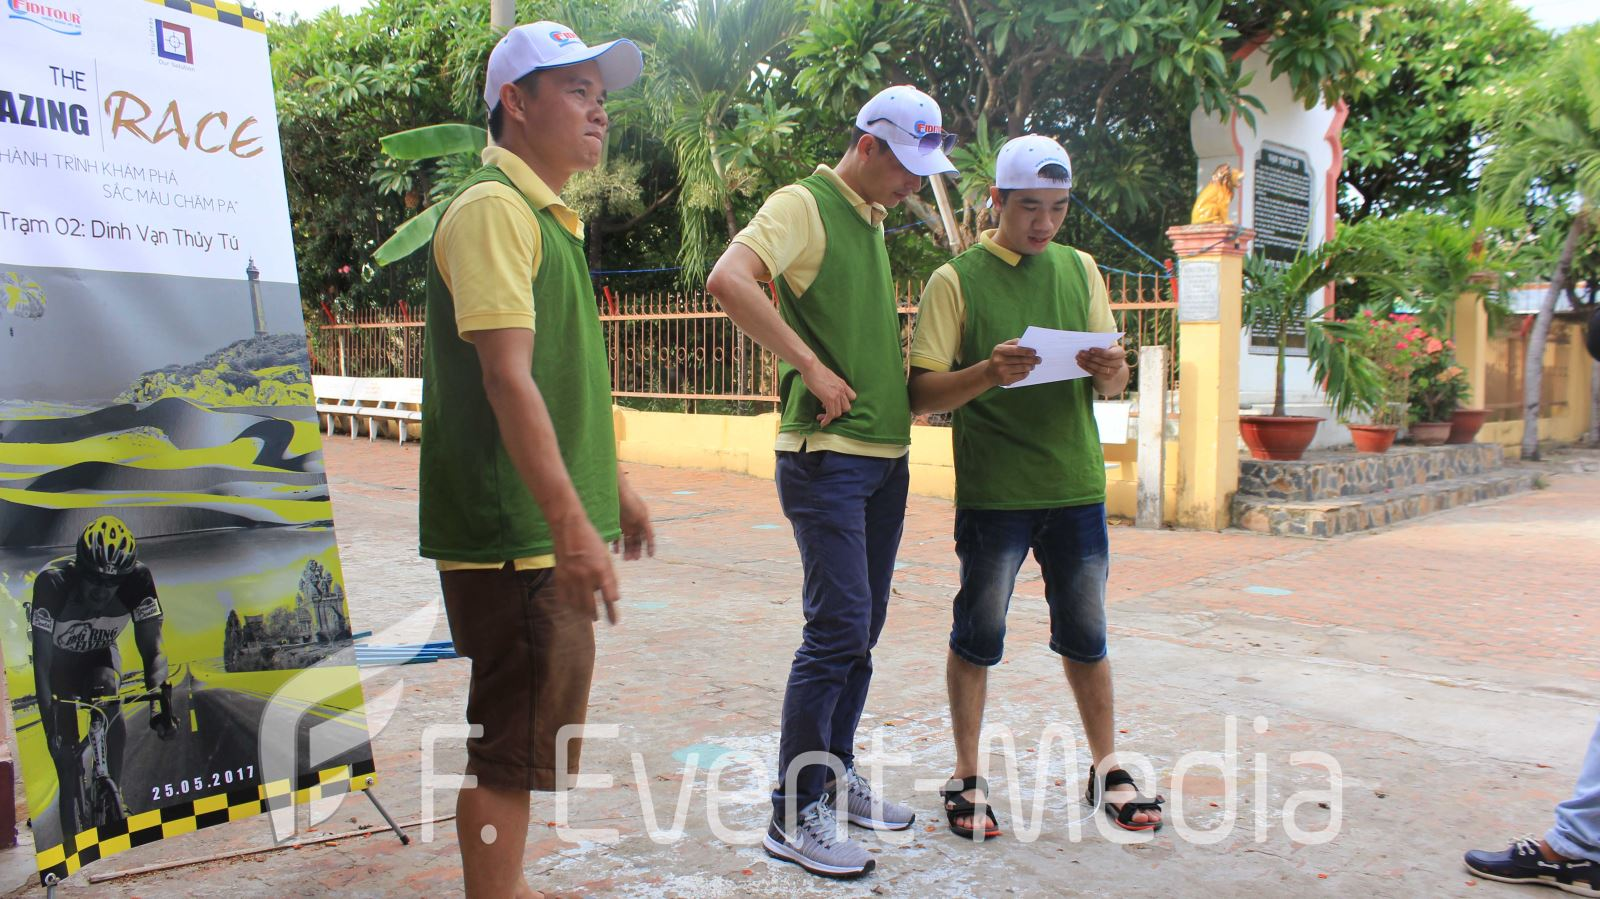 AMAZING RACE CÔNG TY FOCUS